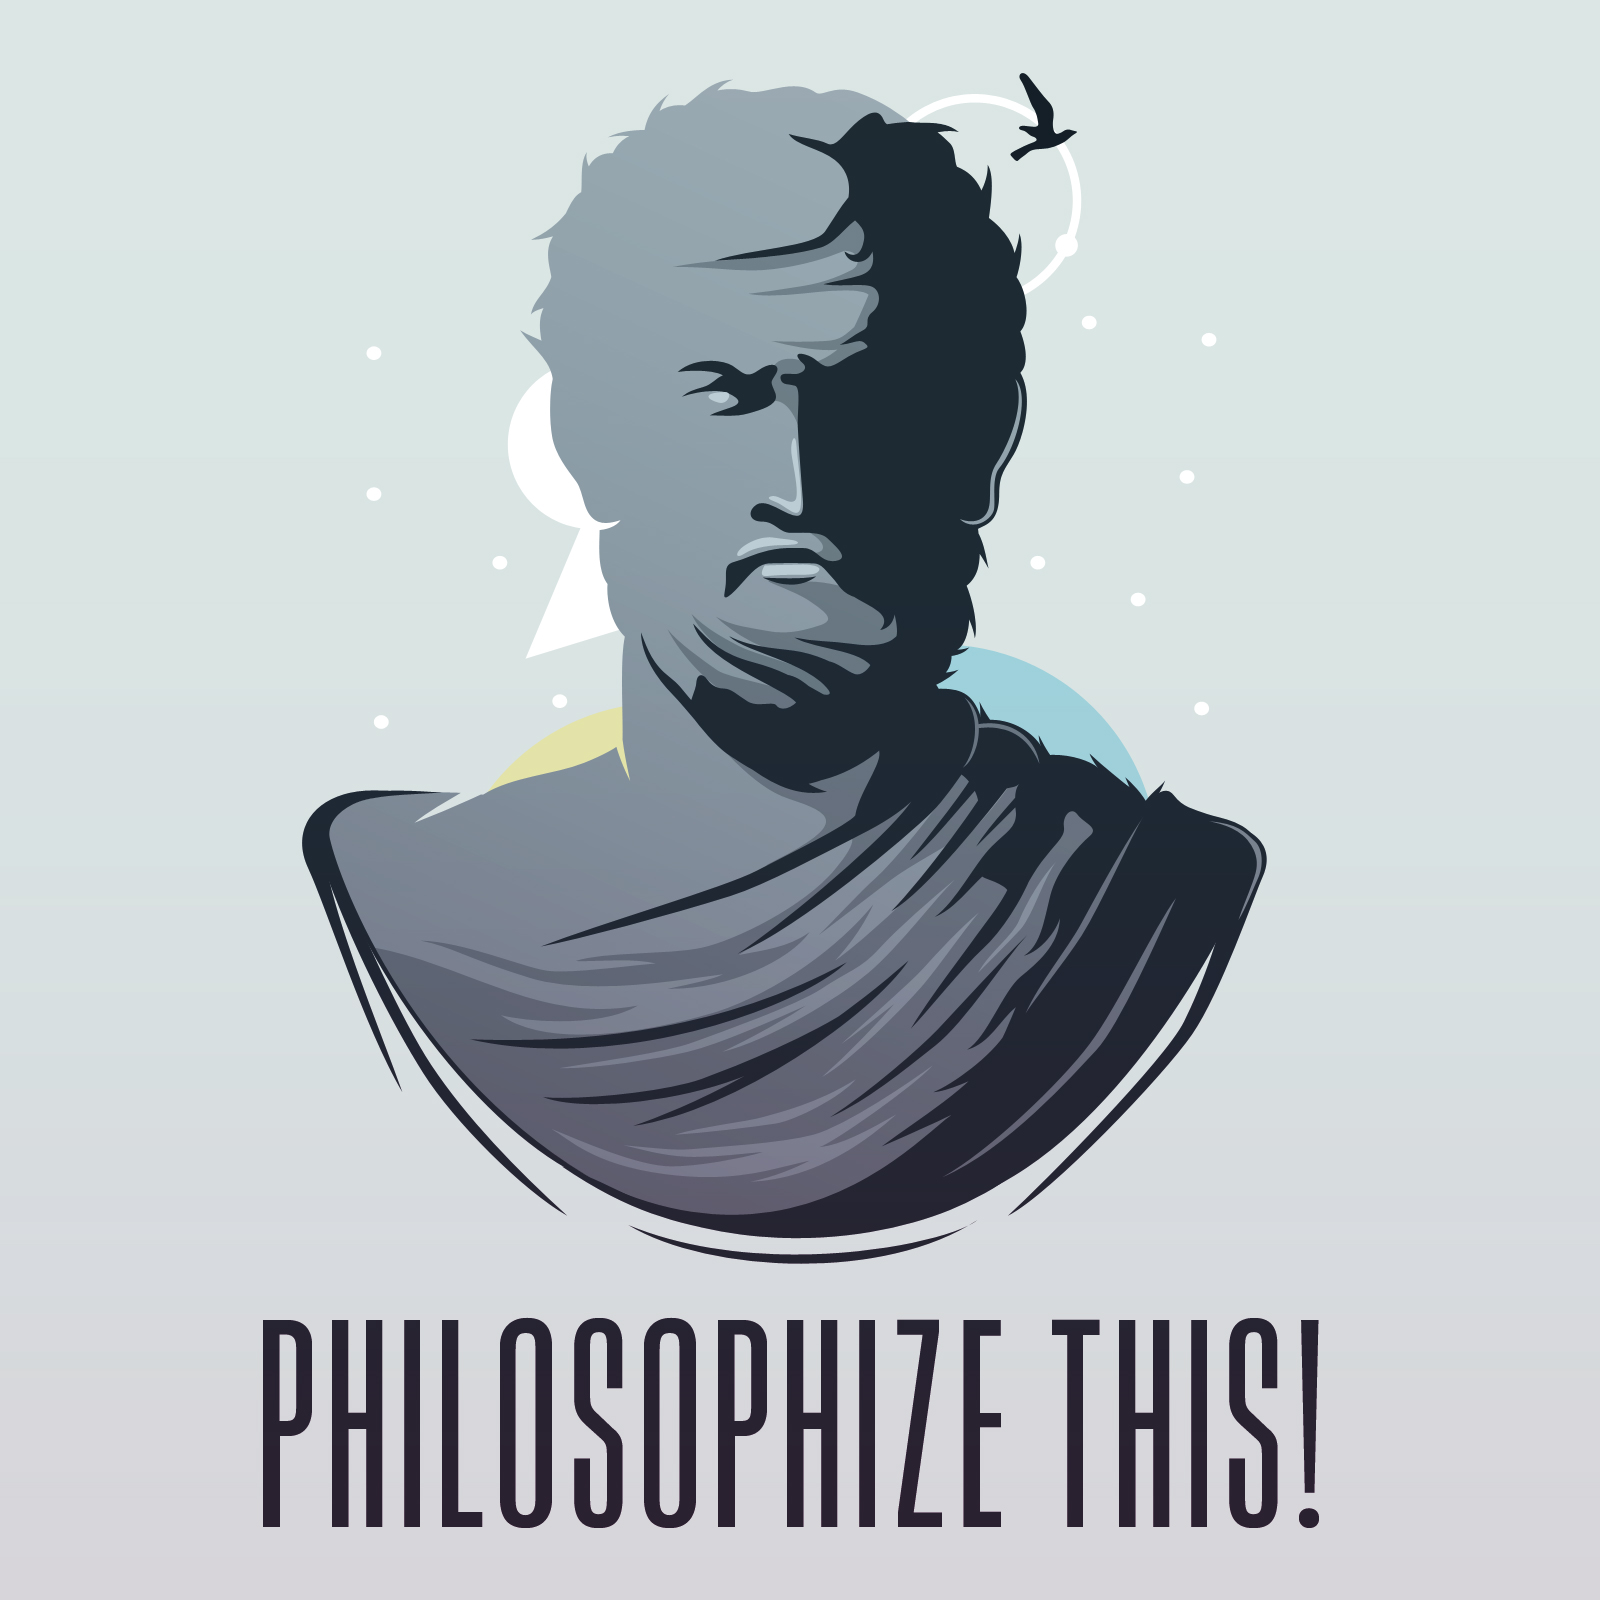 Episode #001 ... Presocratic Philosophy - Ionian